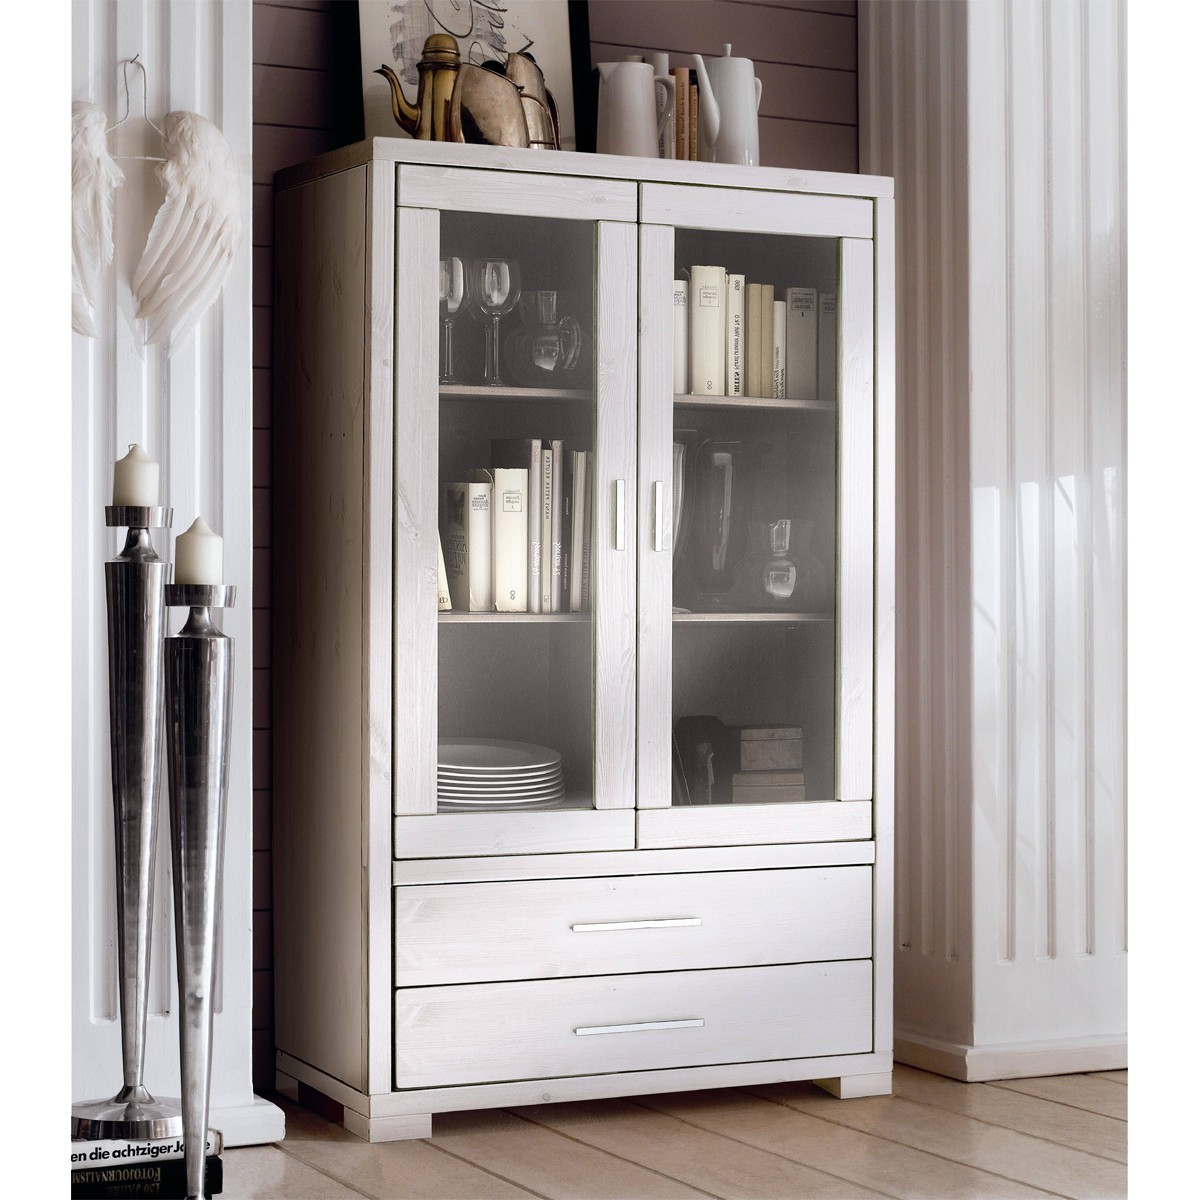 Highboard vitrine weiss raum und m beldesign inspiration for Vitrine skandinavisch